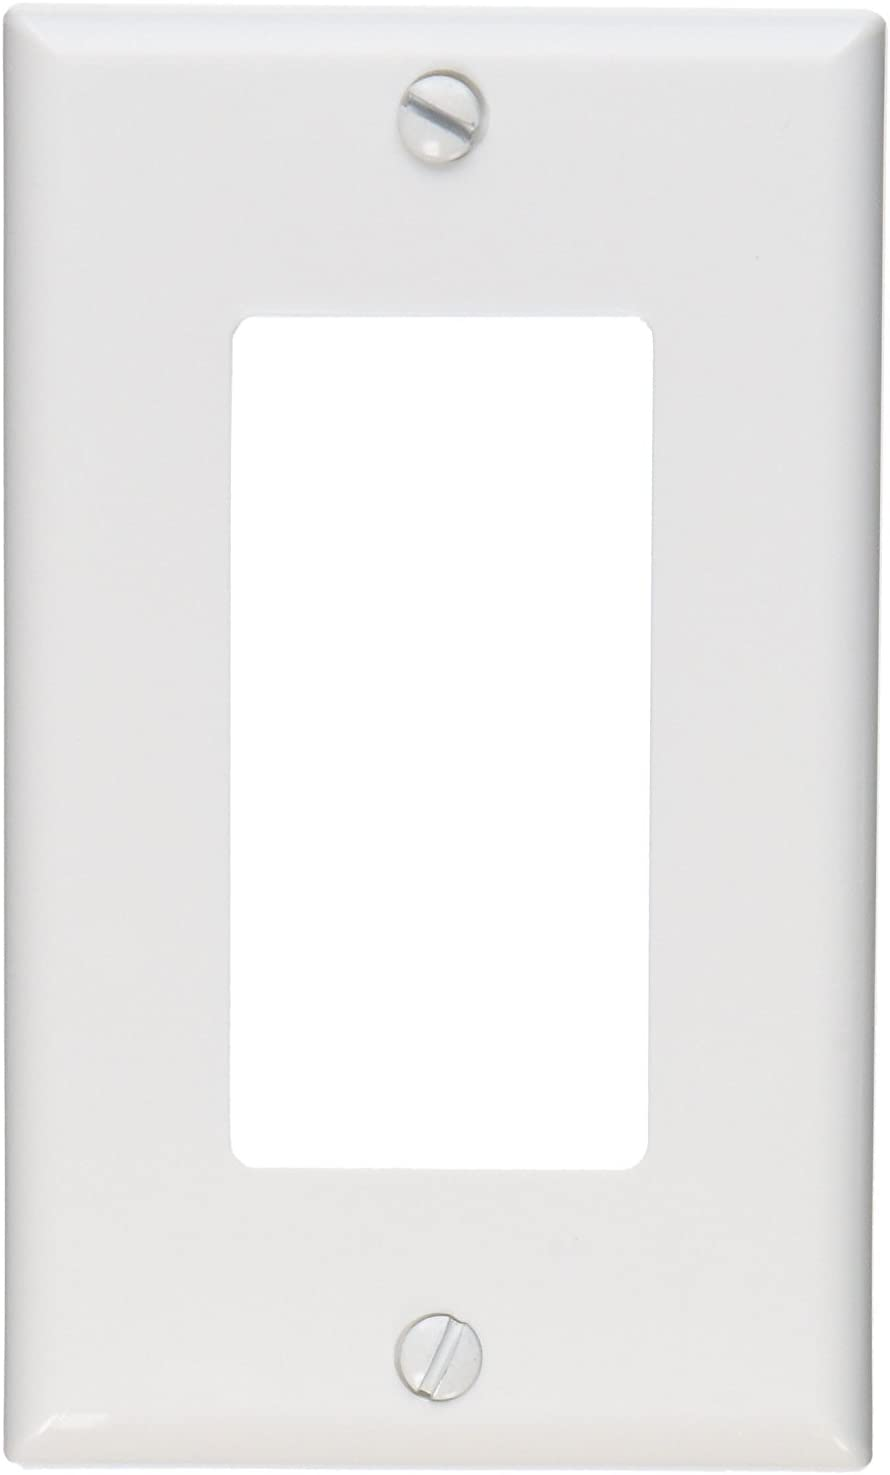 Leviton 80401-NW 1-Gang GFCI Decora Wallplate, Standard Size, Thermoplastic Nylon, Device Mount, 20-Pack, White, 20 Piece